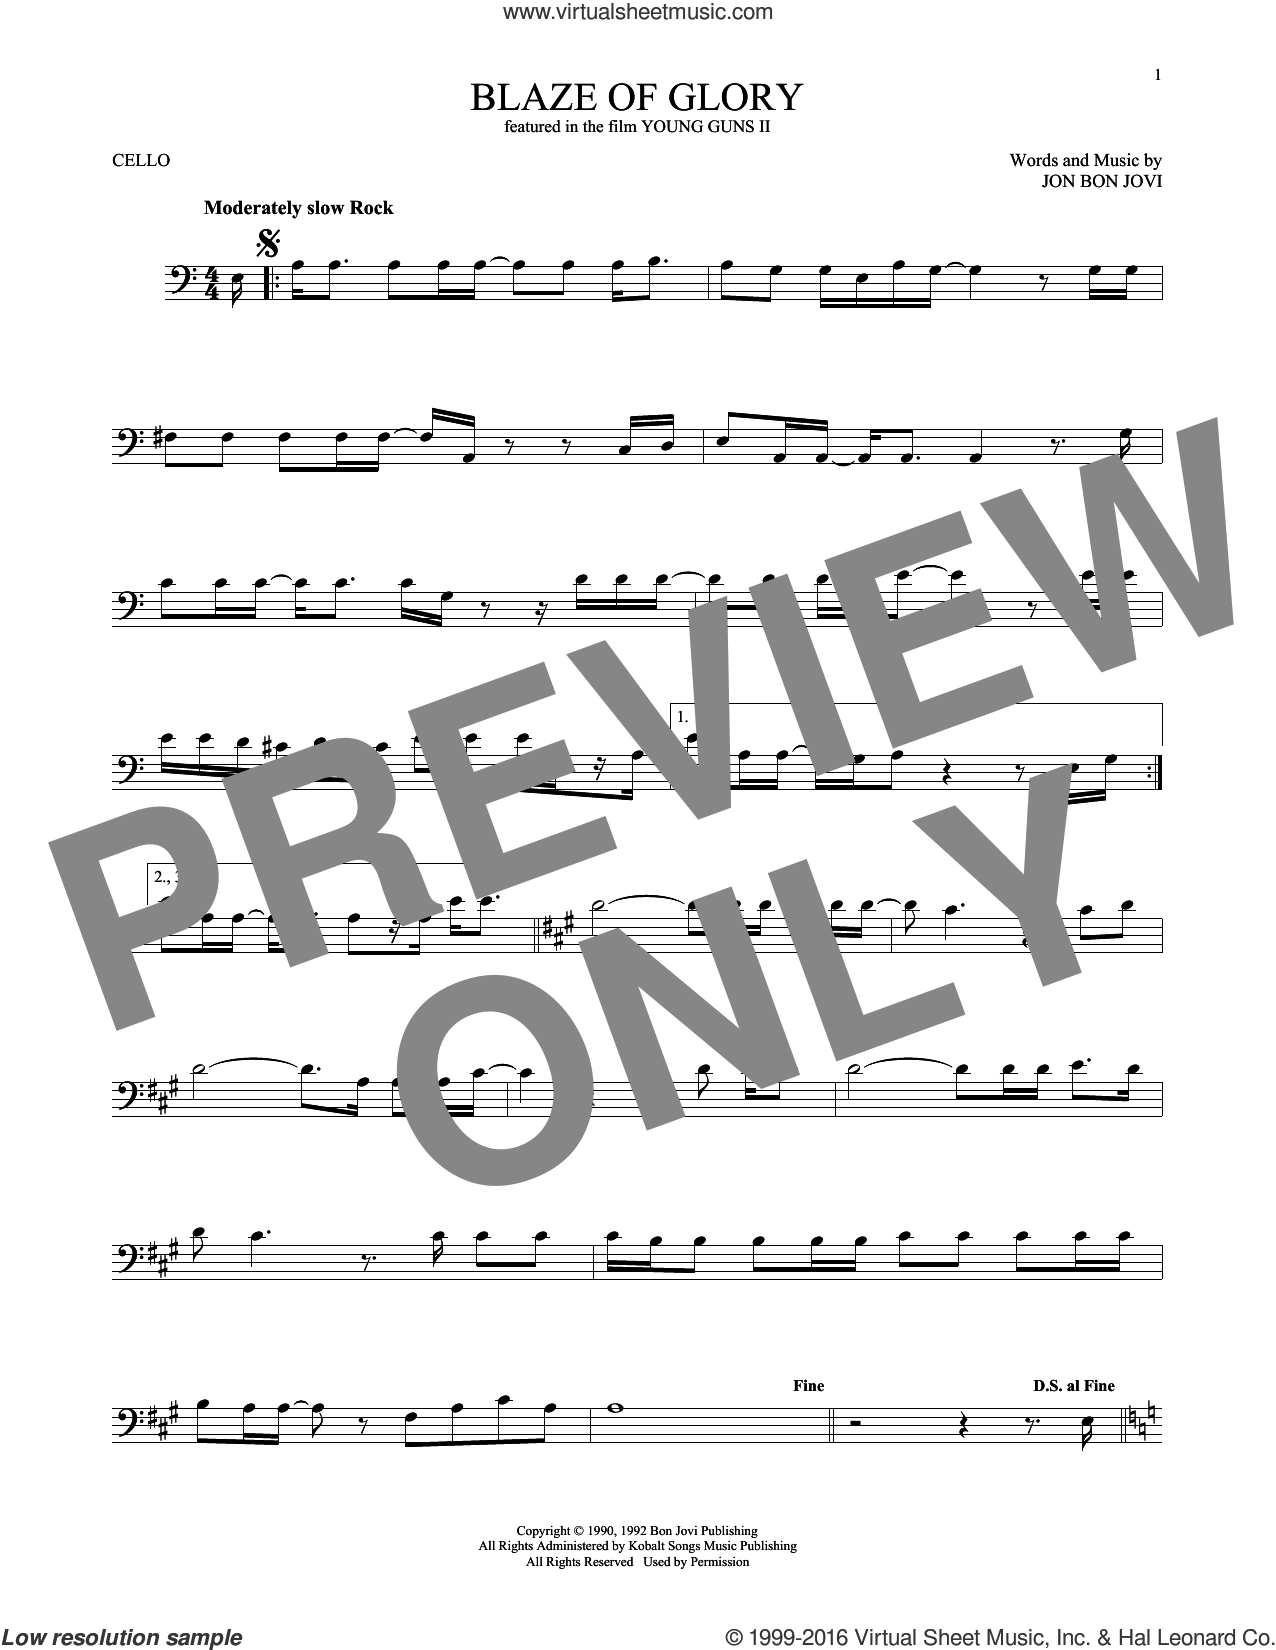 Blaze Of Glory sheet music for cello solo by Bon Jovi. Score Image Preview.